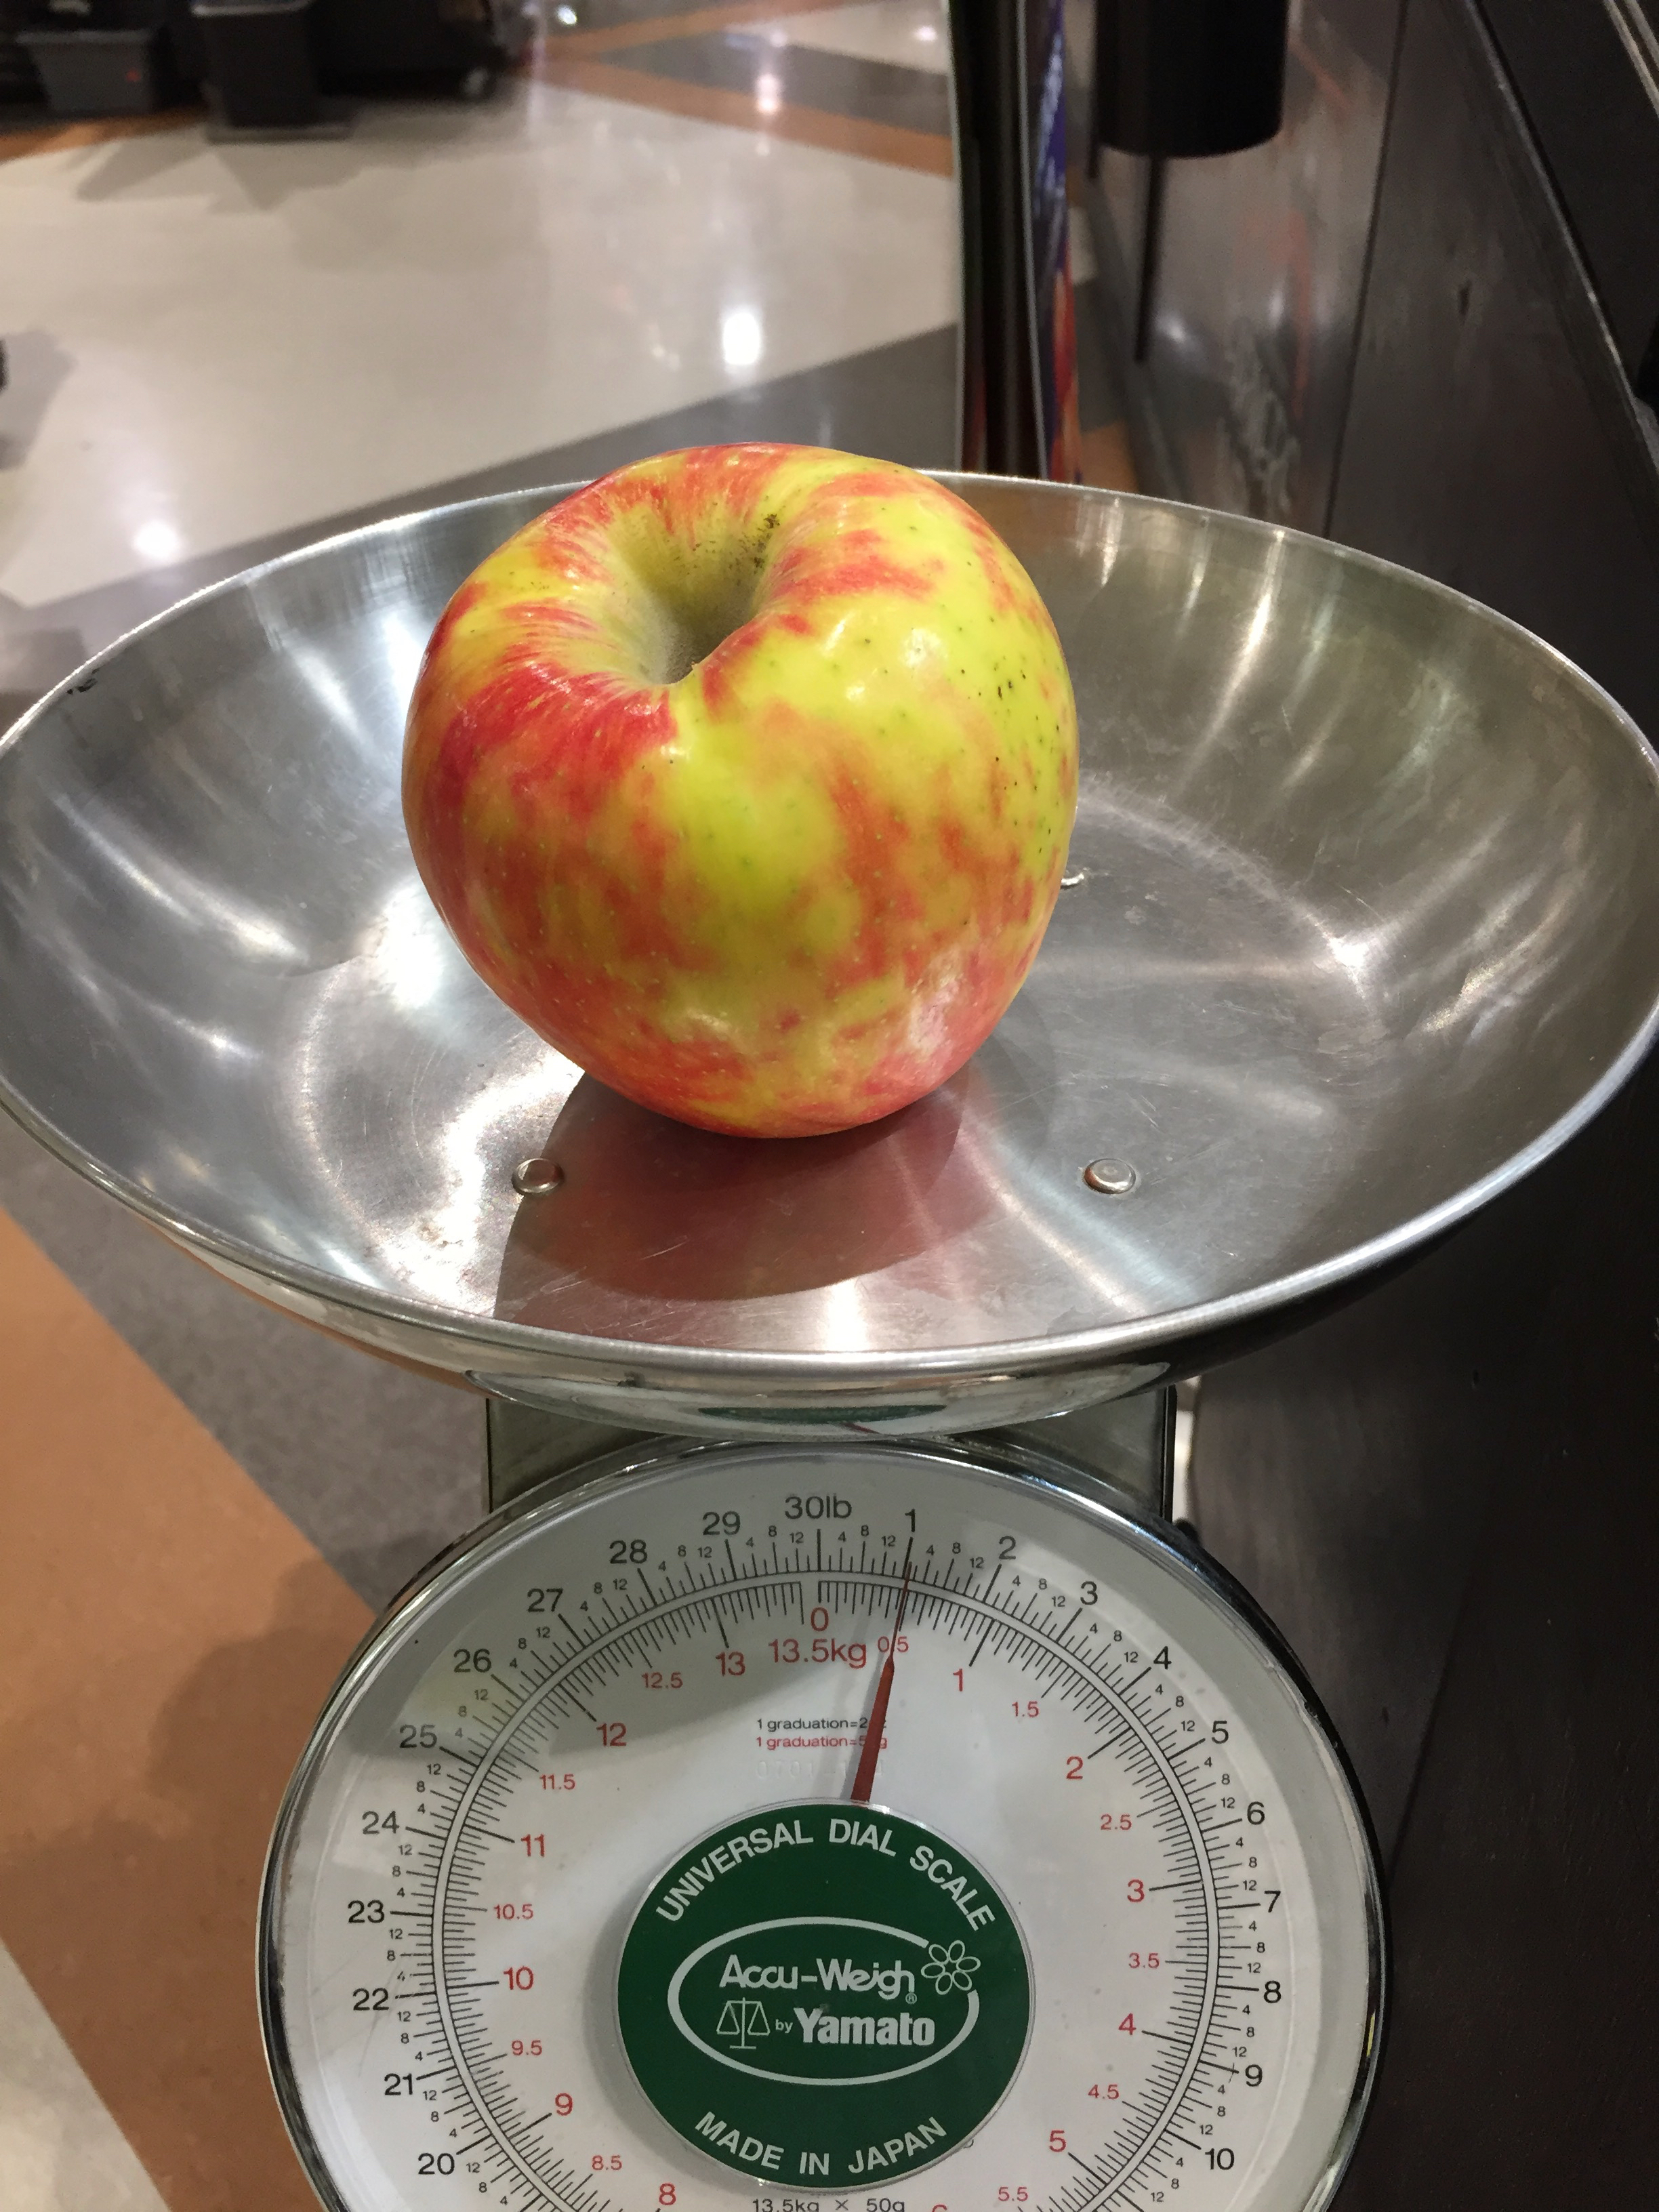 """""""I eat apples every day and they aren't a problem.""""OK, maybe you're right, but rather than letting that assumption get in the way, consider letting the FODMAP elimination and reintroduction process do its work to prove it."""